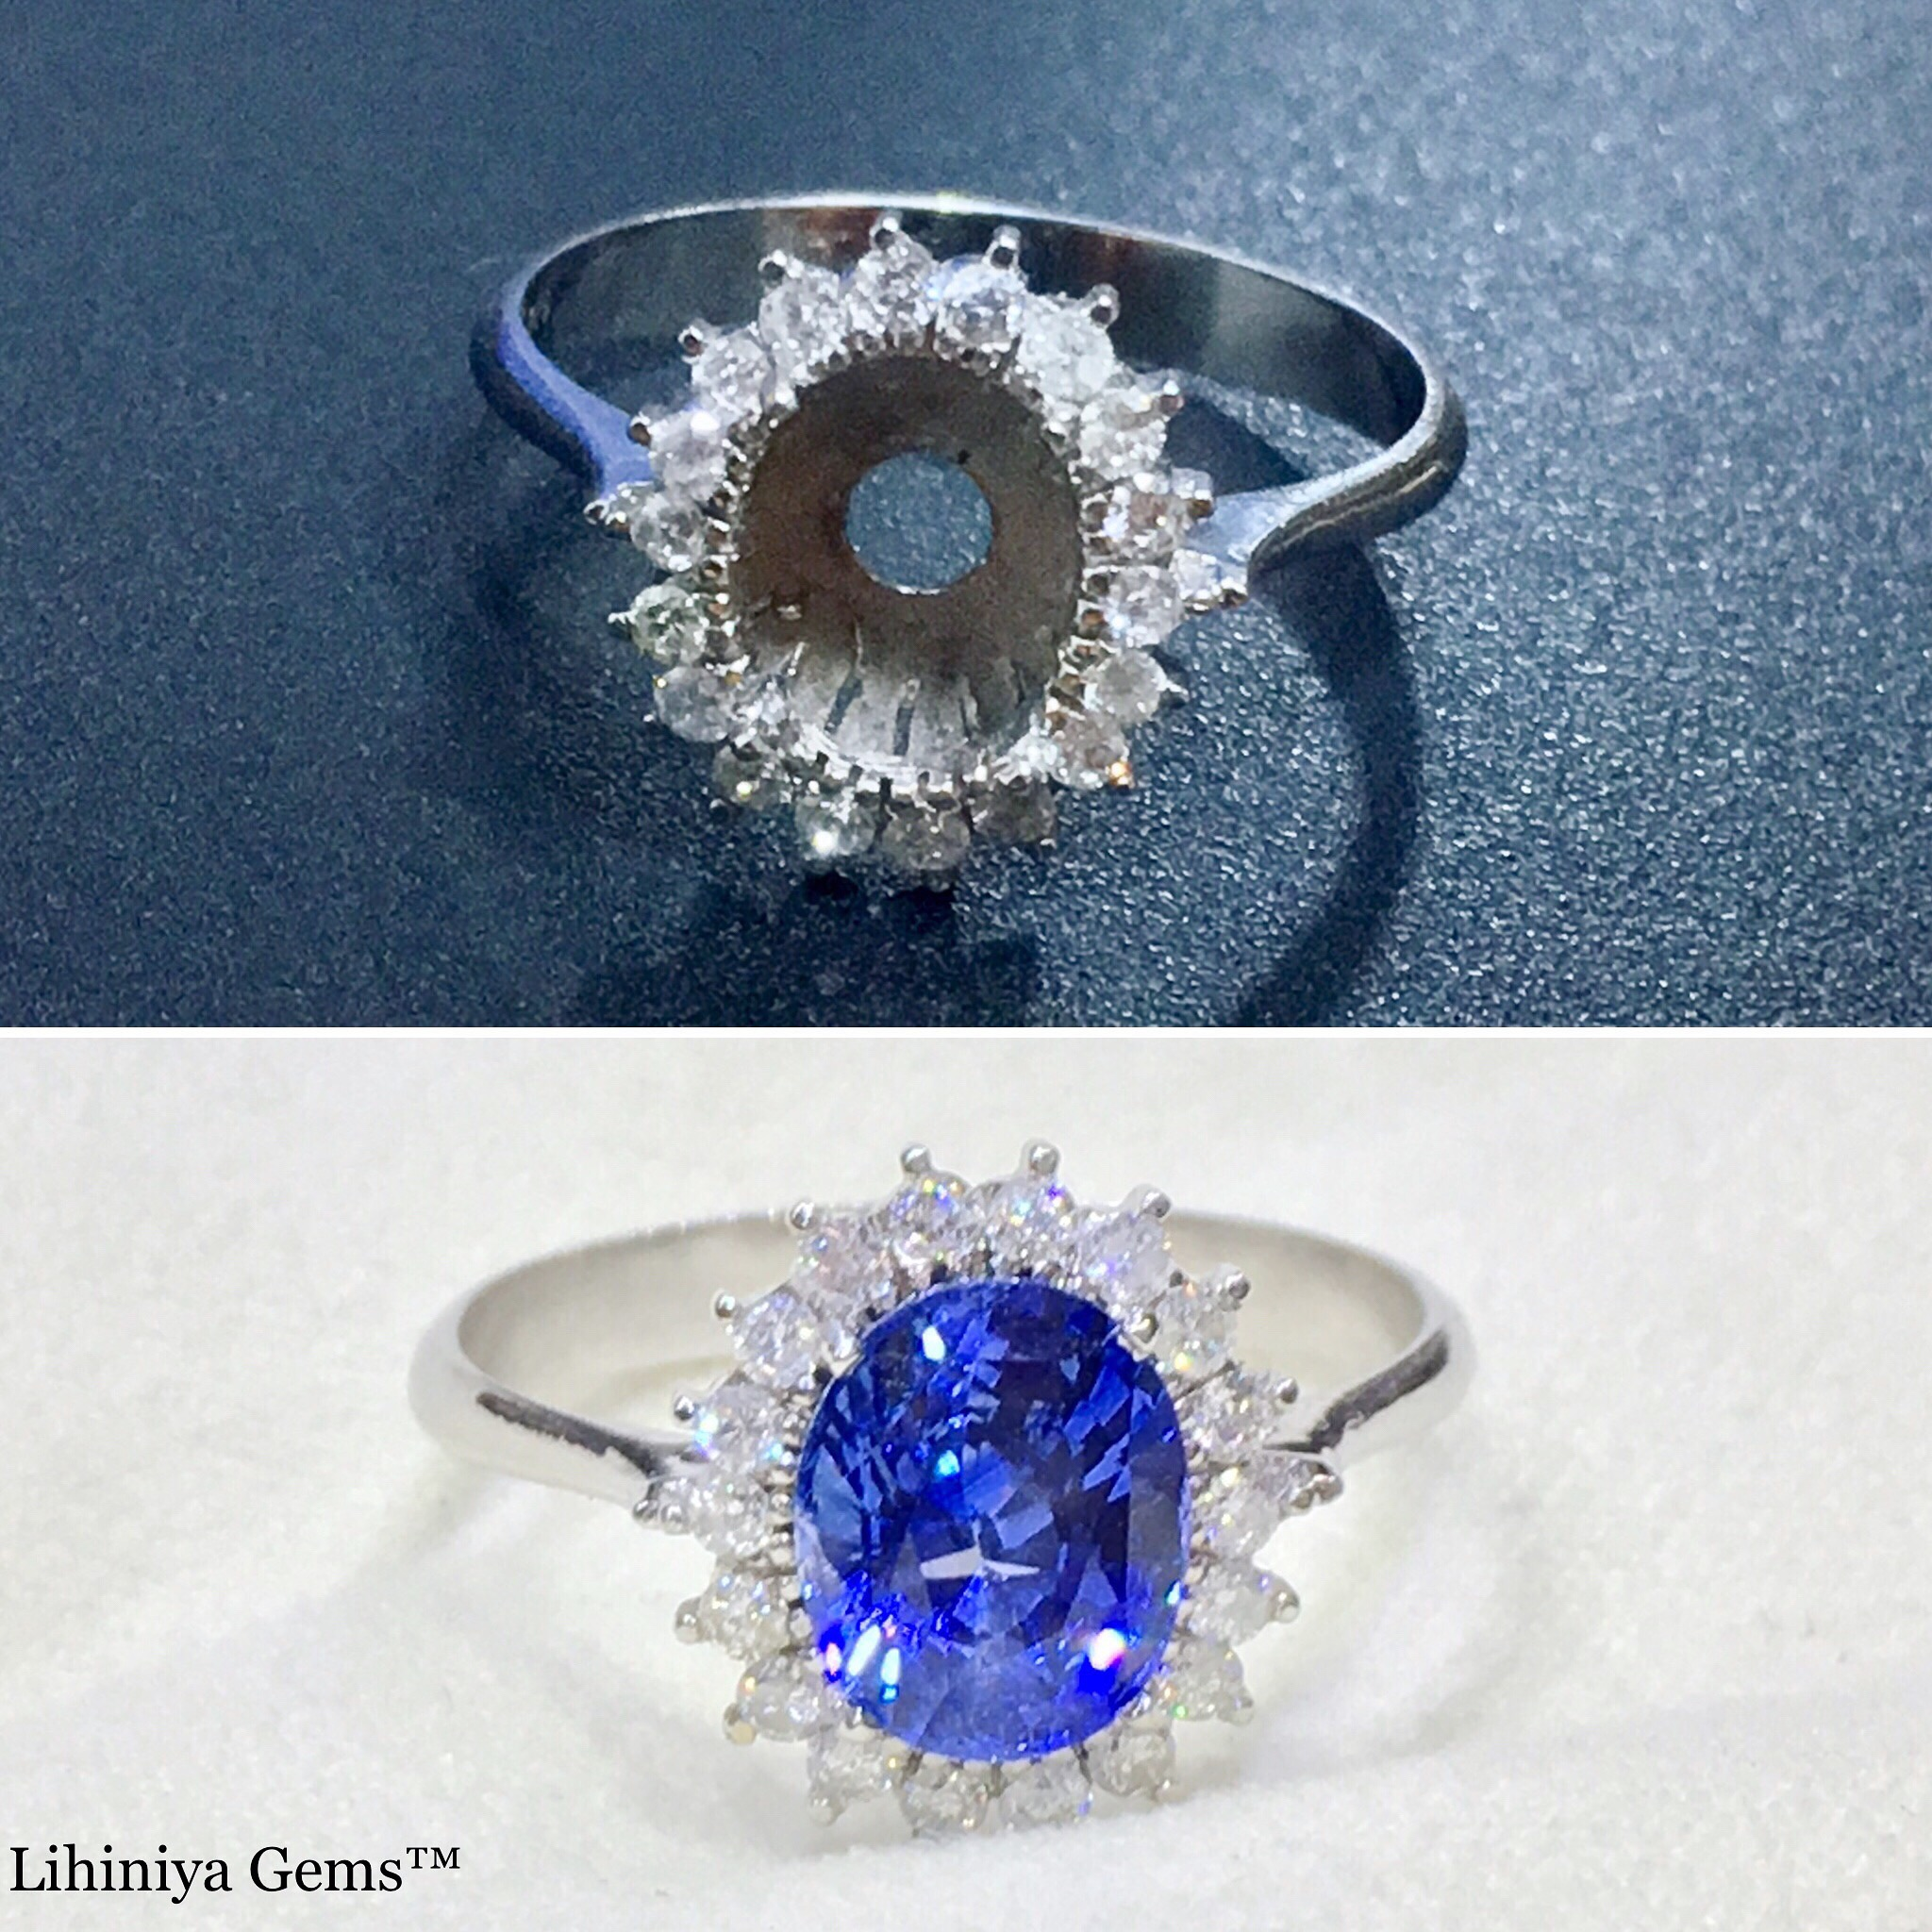 blog gold set green blogs sapphire radiant cut blue for rose light rings medium diamond sapphires bridal teal fullxfull engagement il